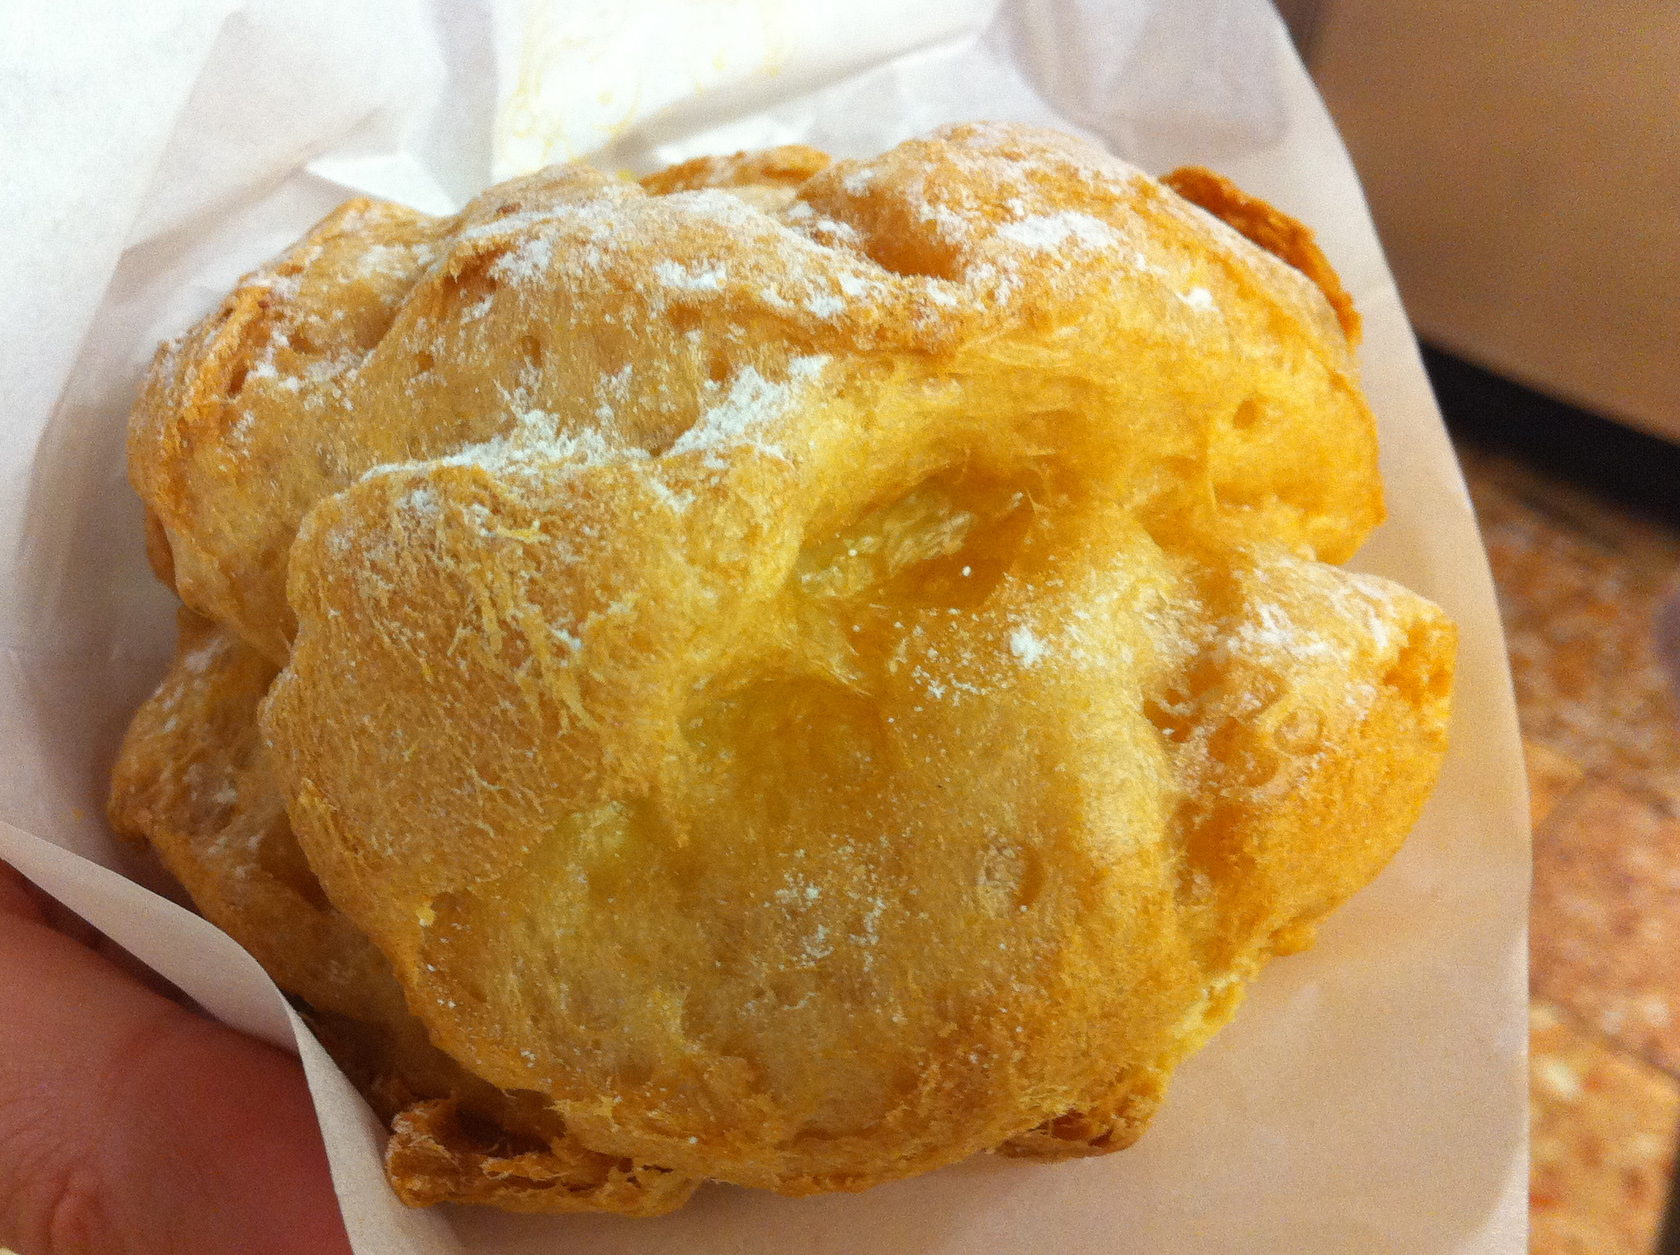 Cream Puff at Beard Papa in Hong Kong. Photo by alphacityguides.